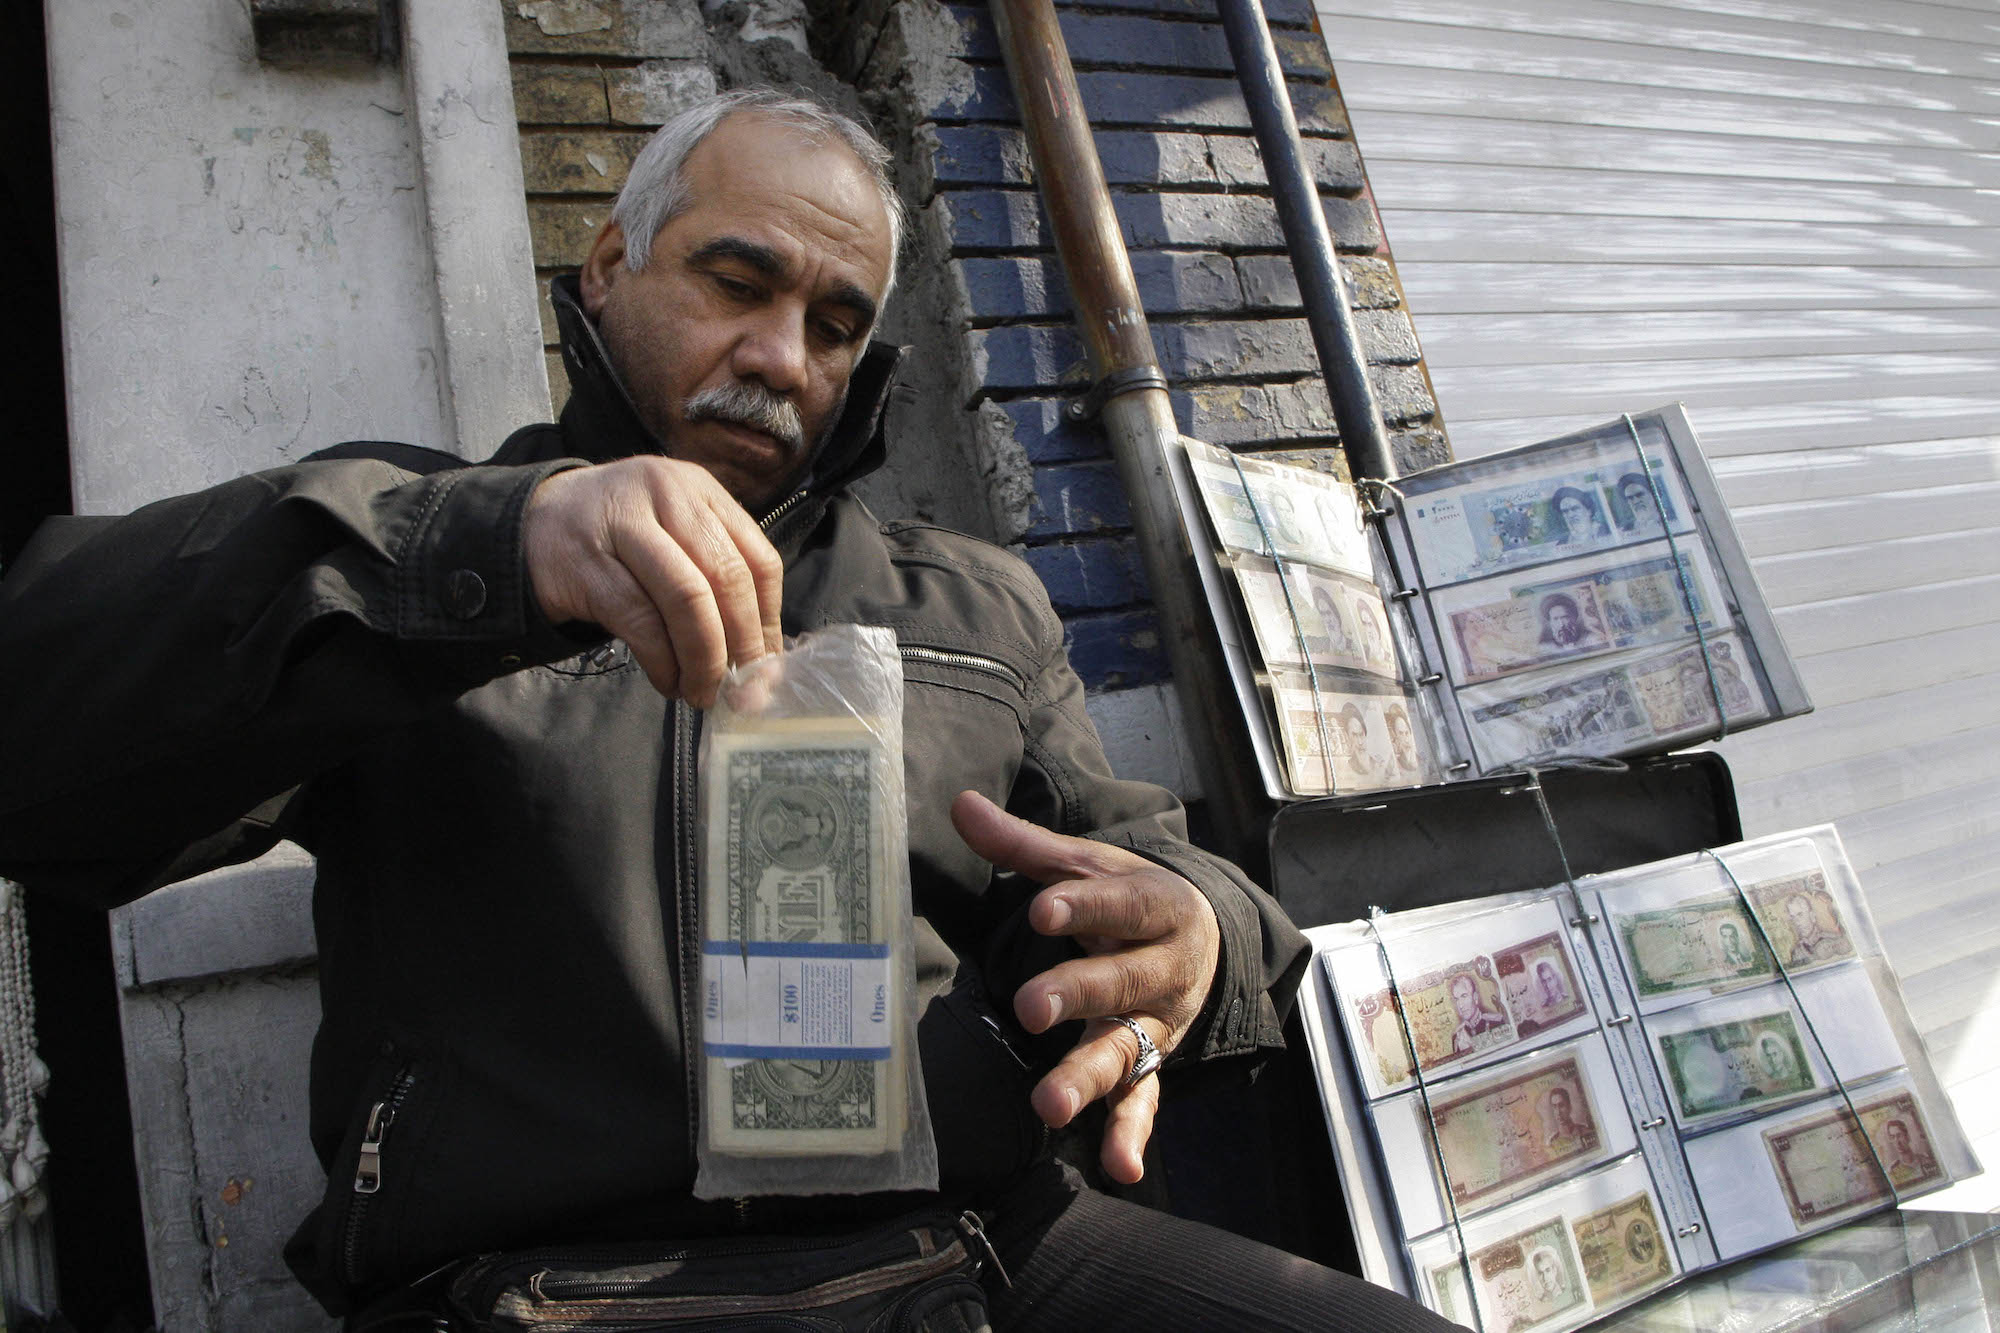 Iranian man exchanges currency